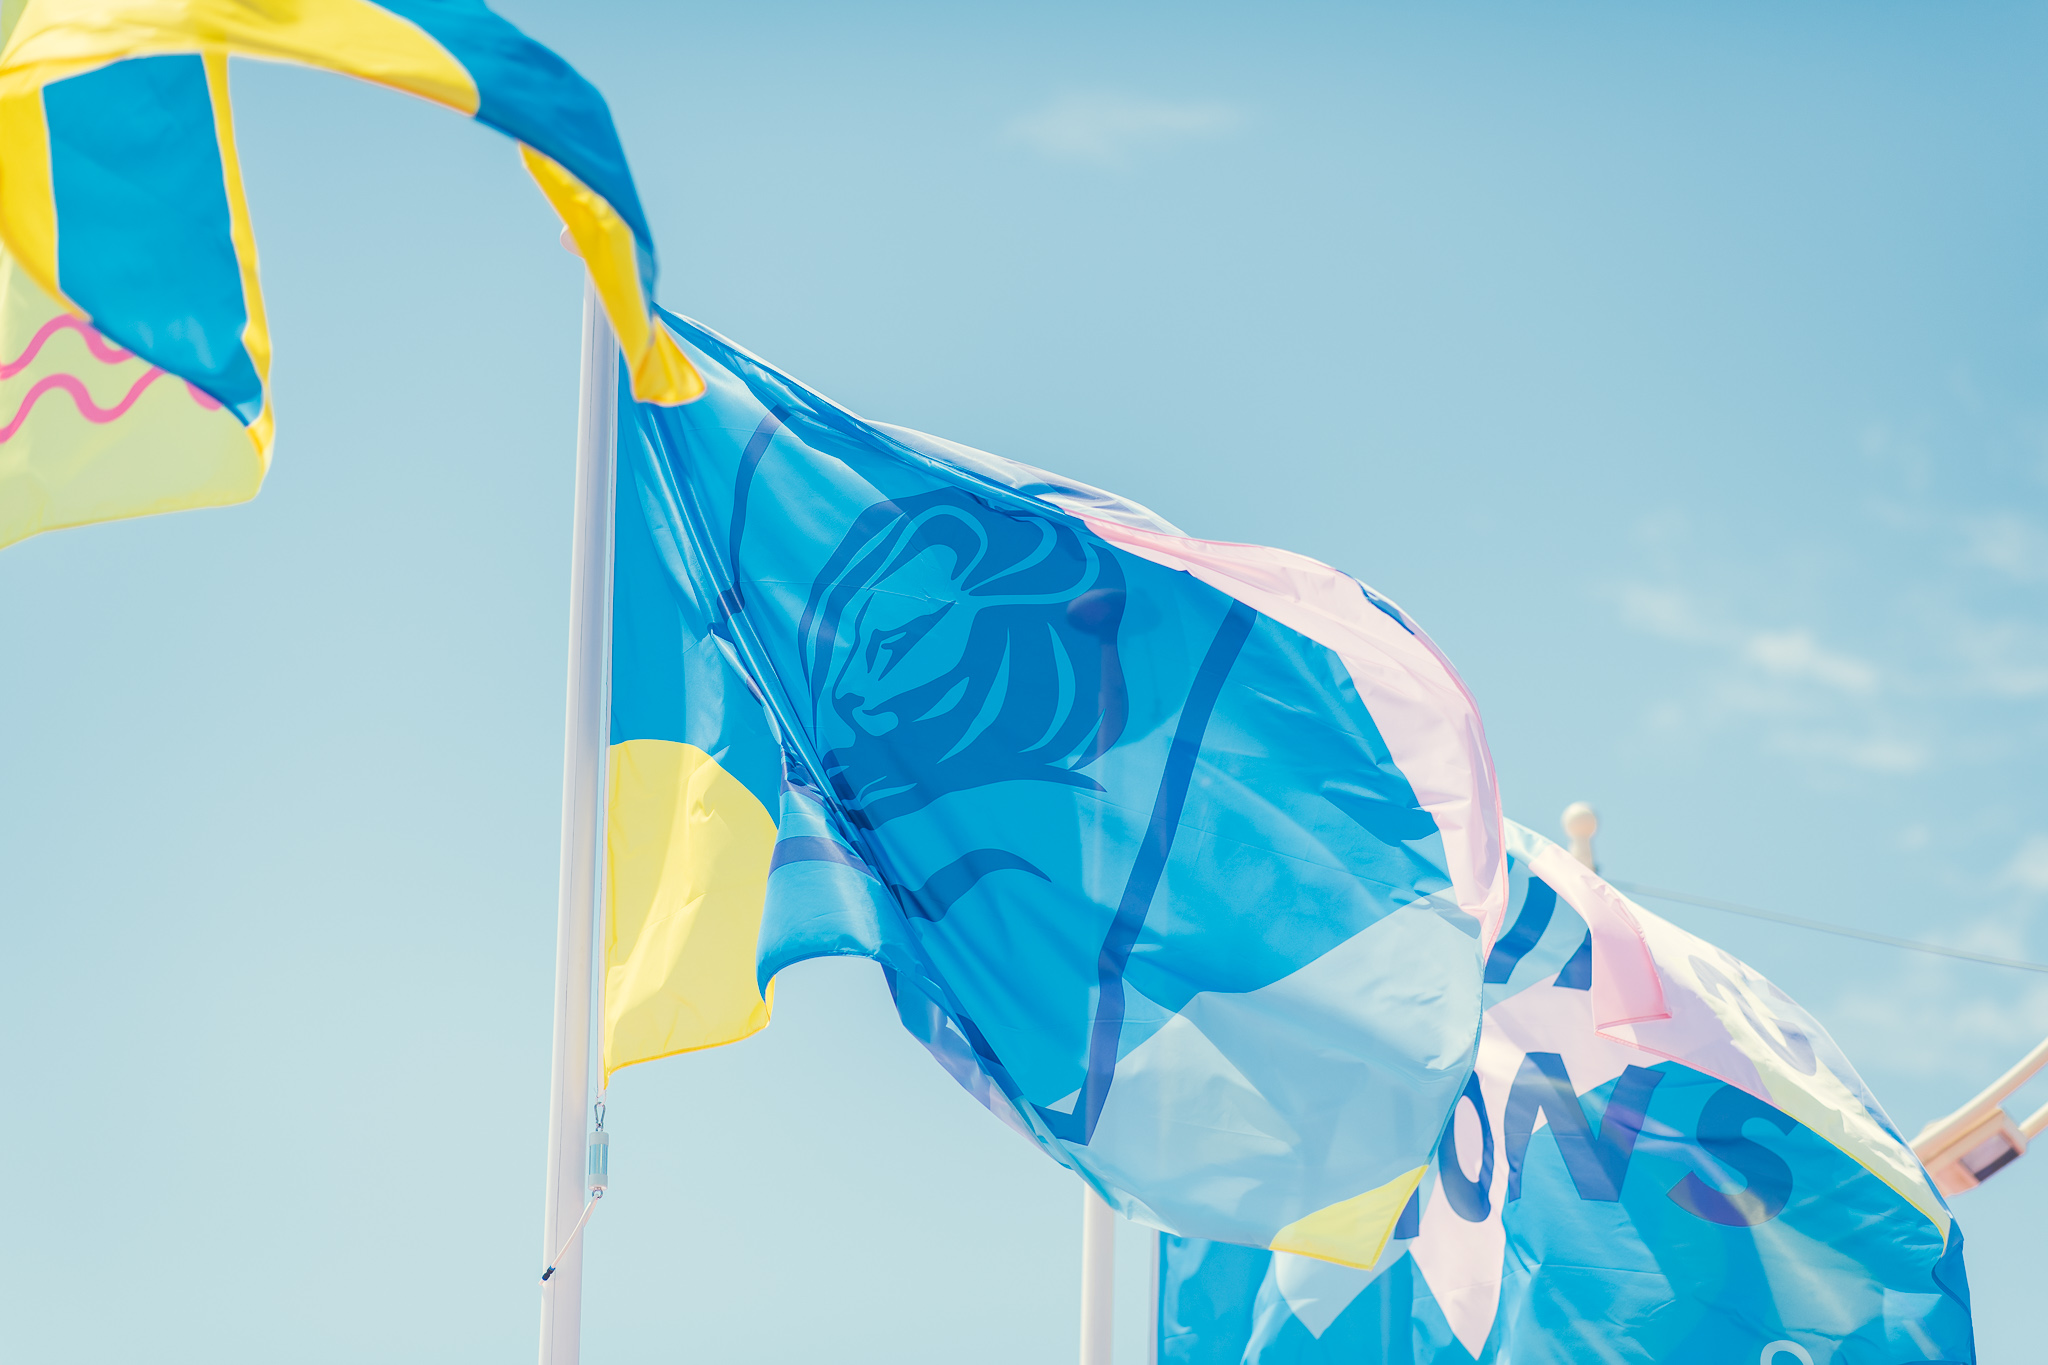 Cannes Lions achieves gender parity in jury president lineup for 2020